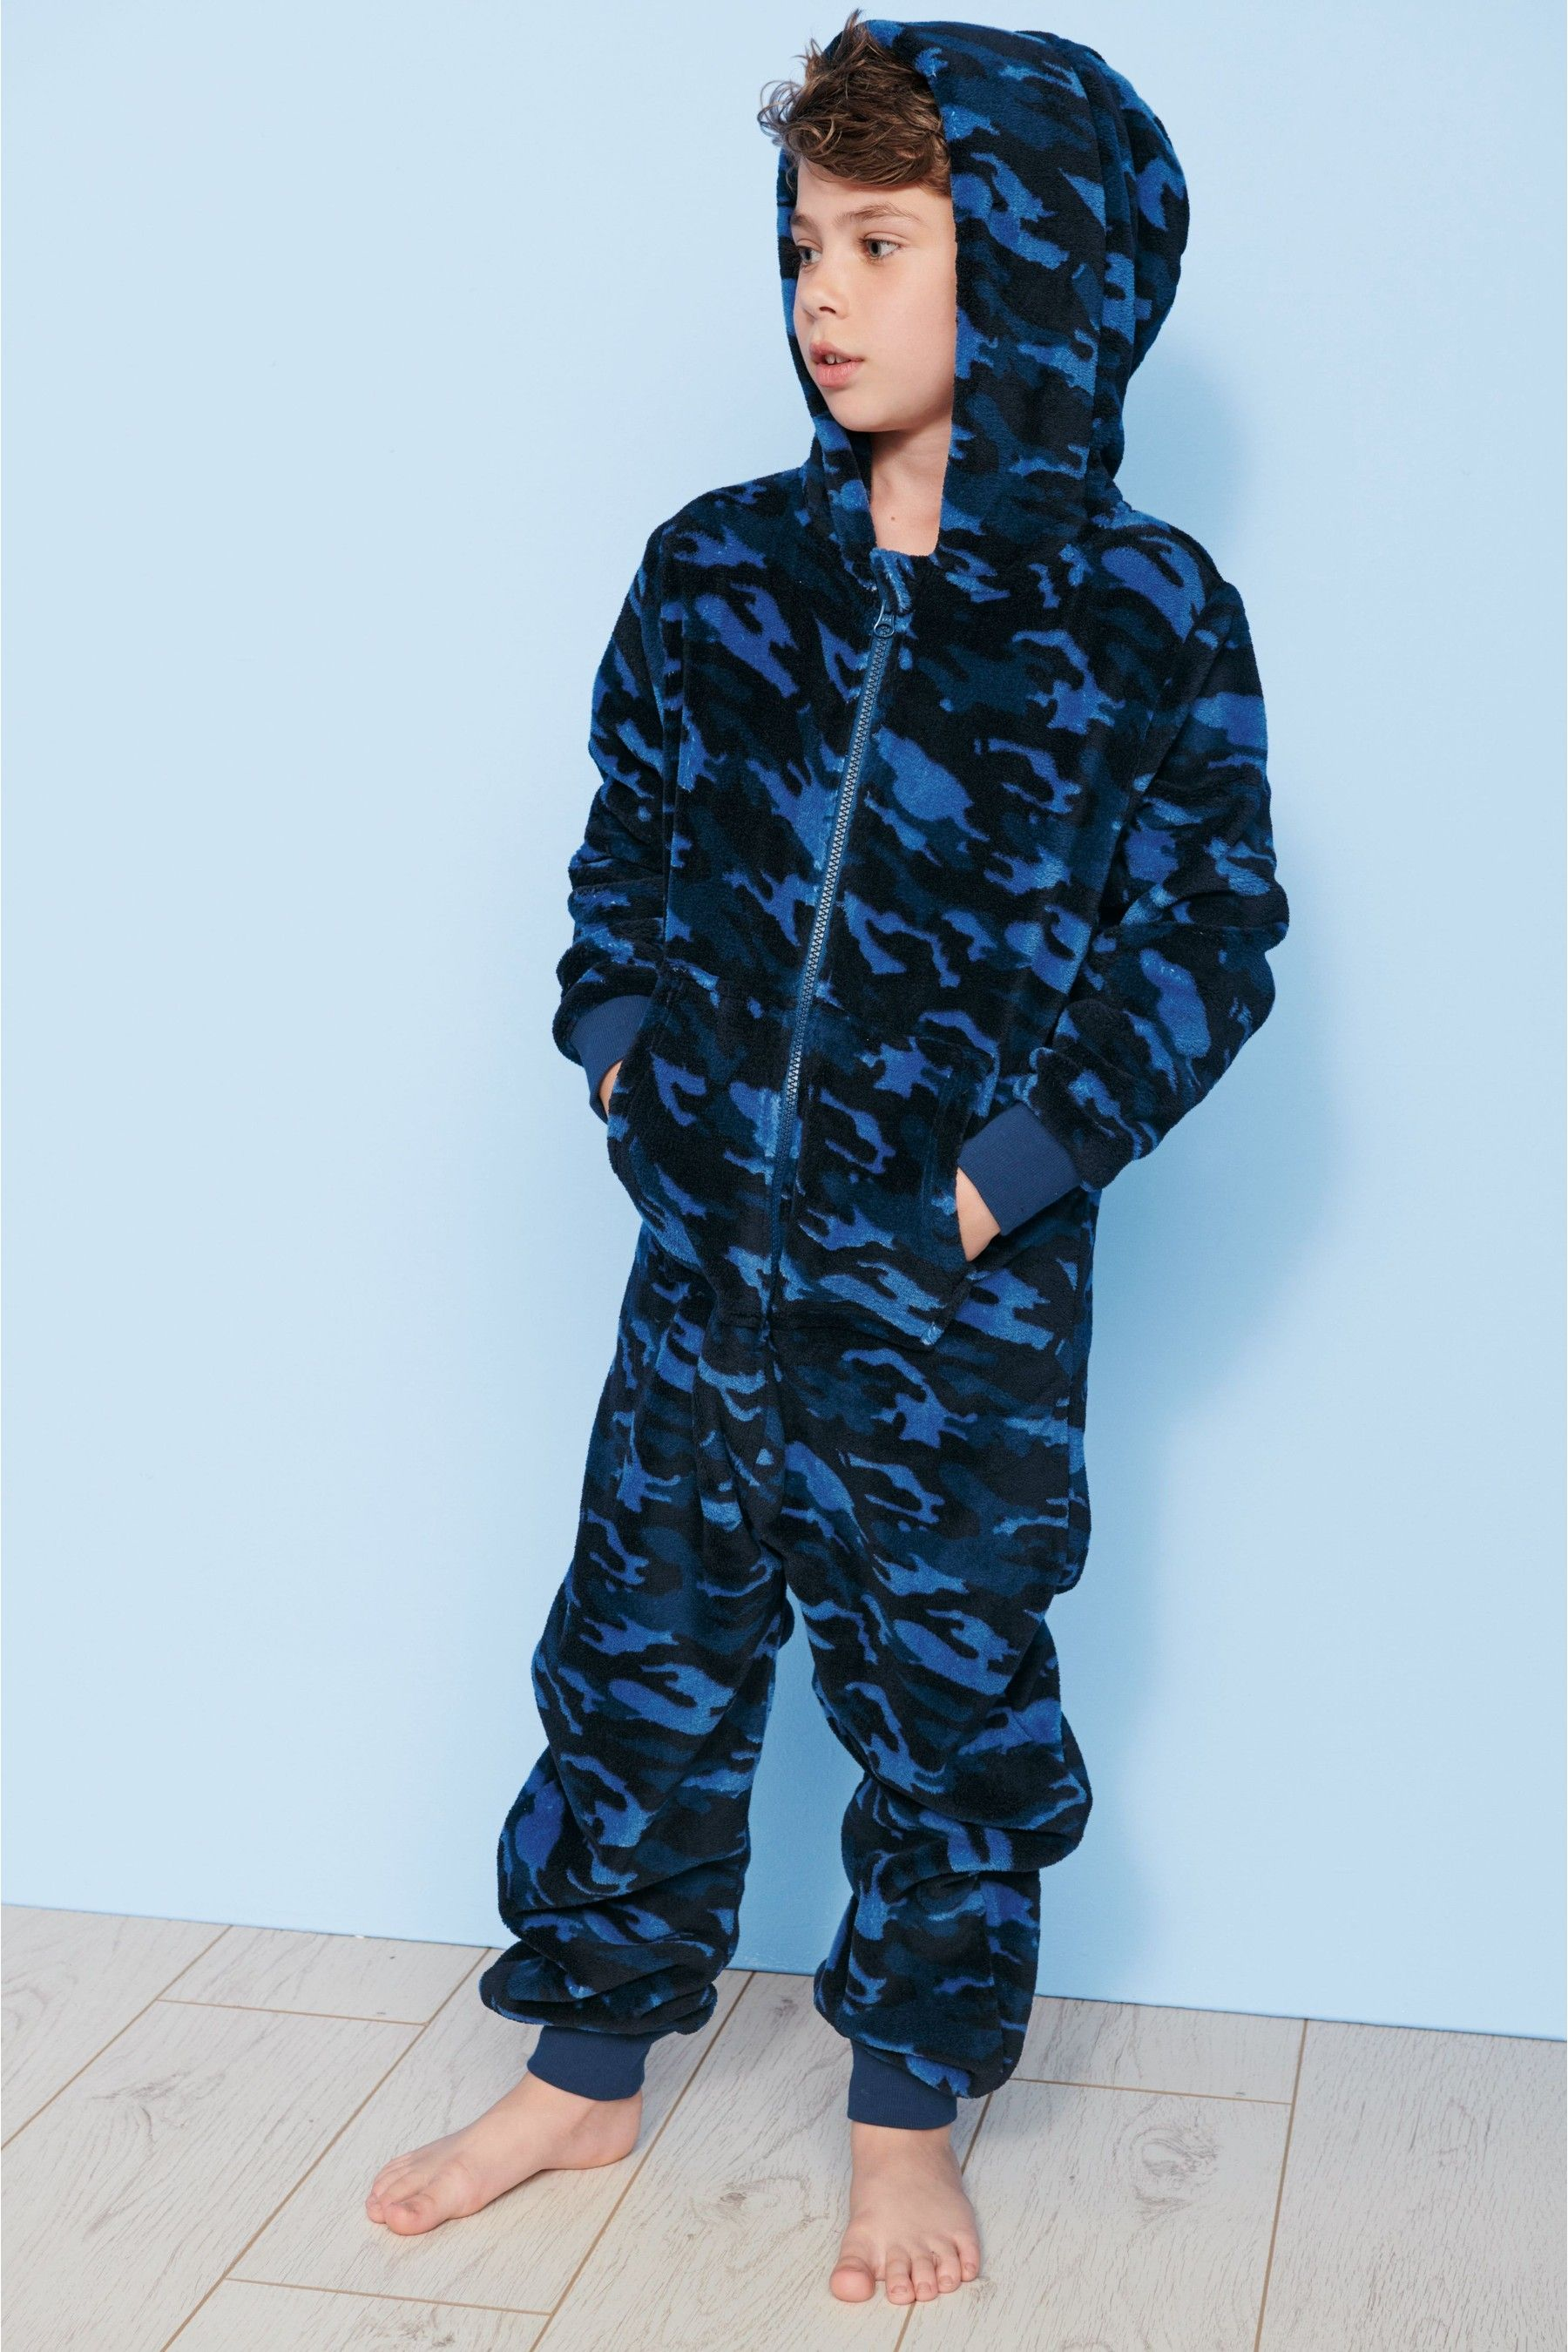 c247e284984 Boy Onesie, Onesies, Night Looks, Kids Outfits, Cute Outfits, Blue Camo